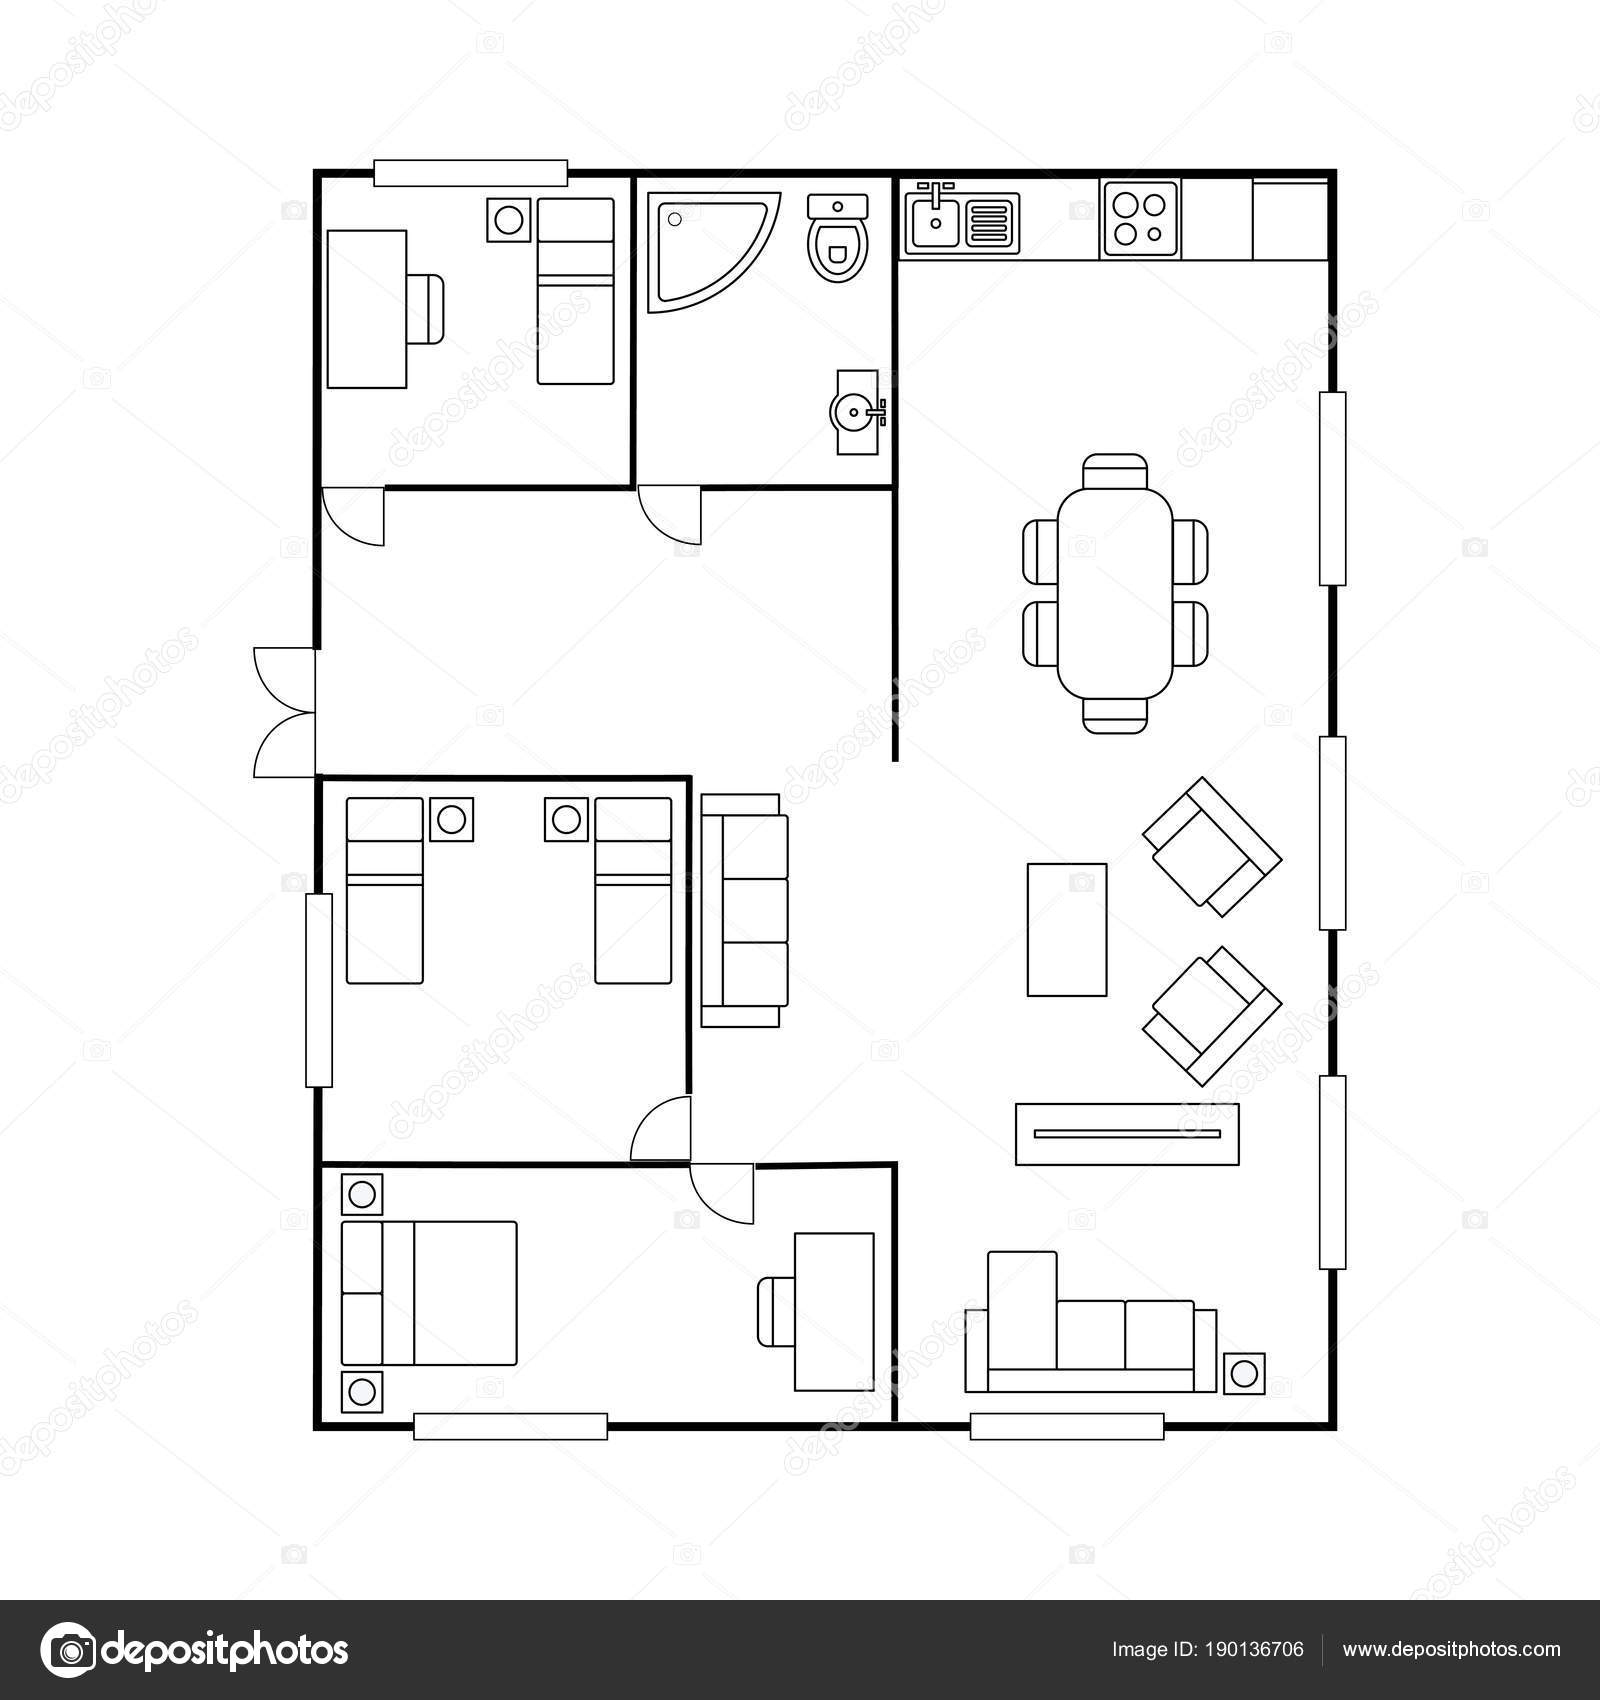 floor plan furniture vector. Architecture Plan With Furniture. House Floor Plan, Isolated On White Background,stock Vector Illustration \u2014 By Naum100 Furniture S